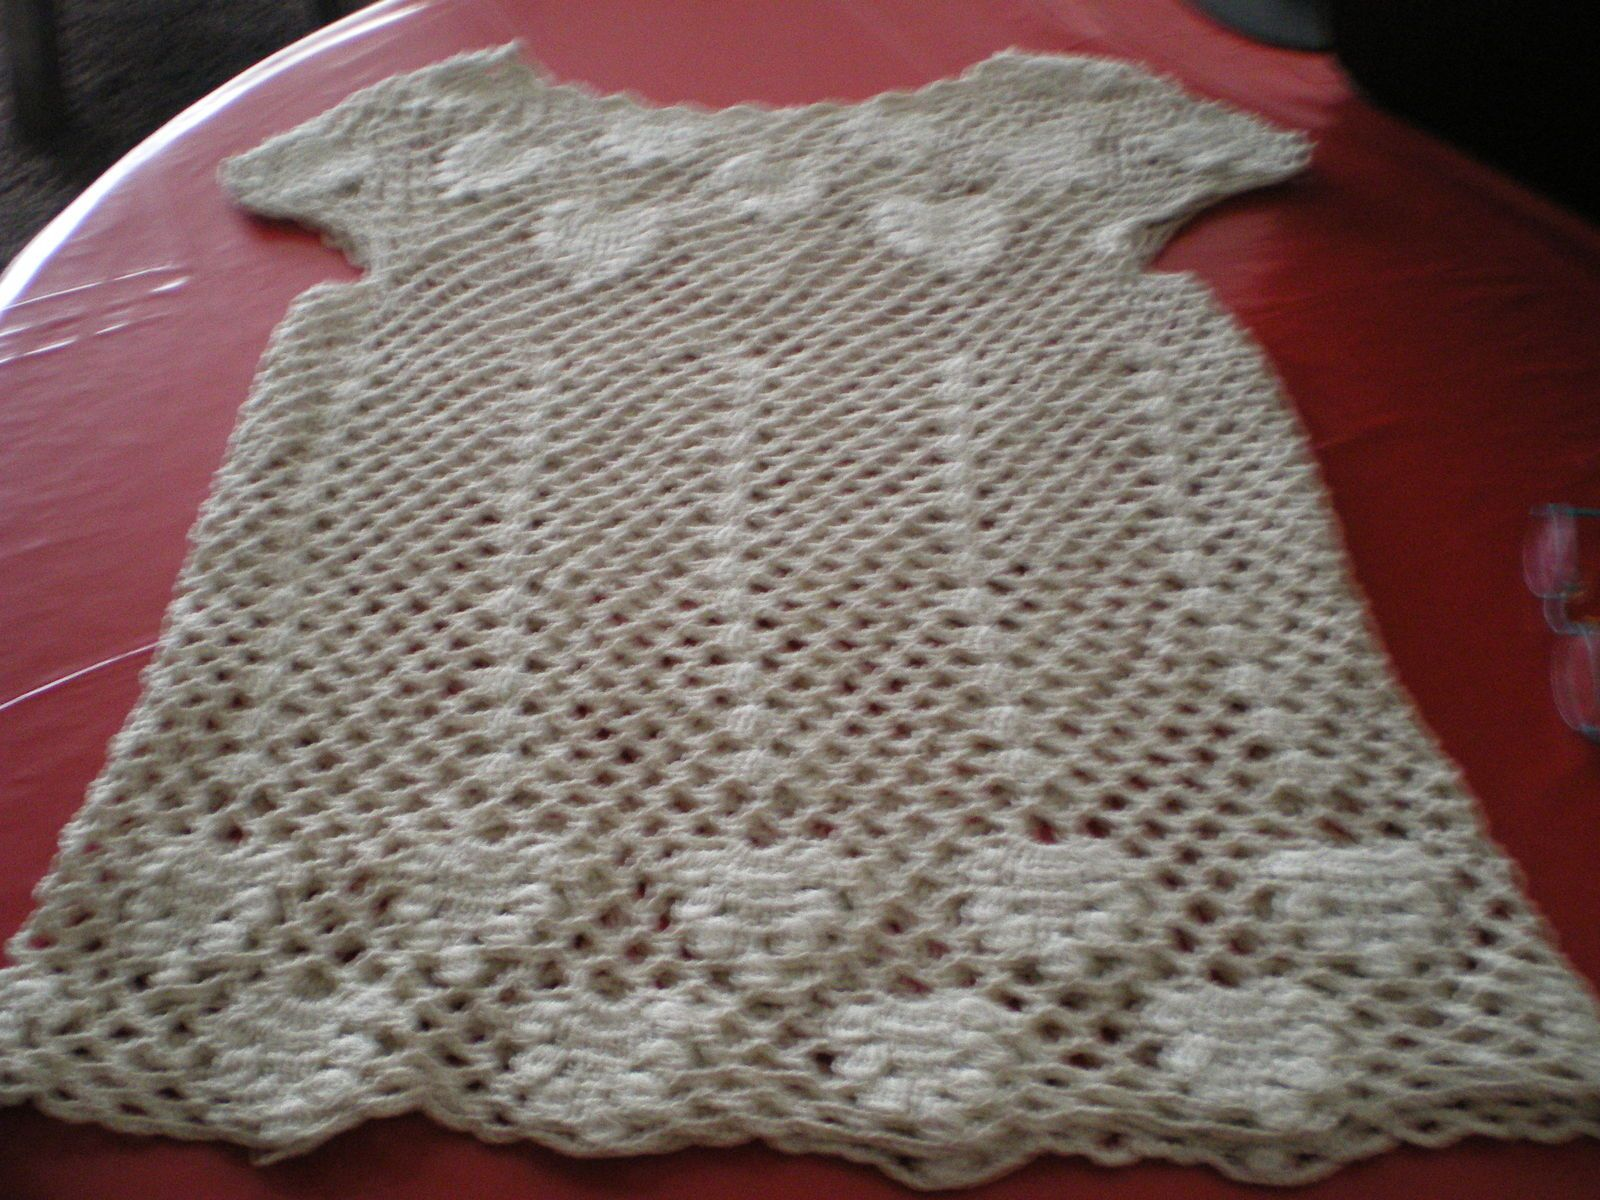 TOP AU CROCHET PAR MICHELINE...